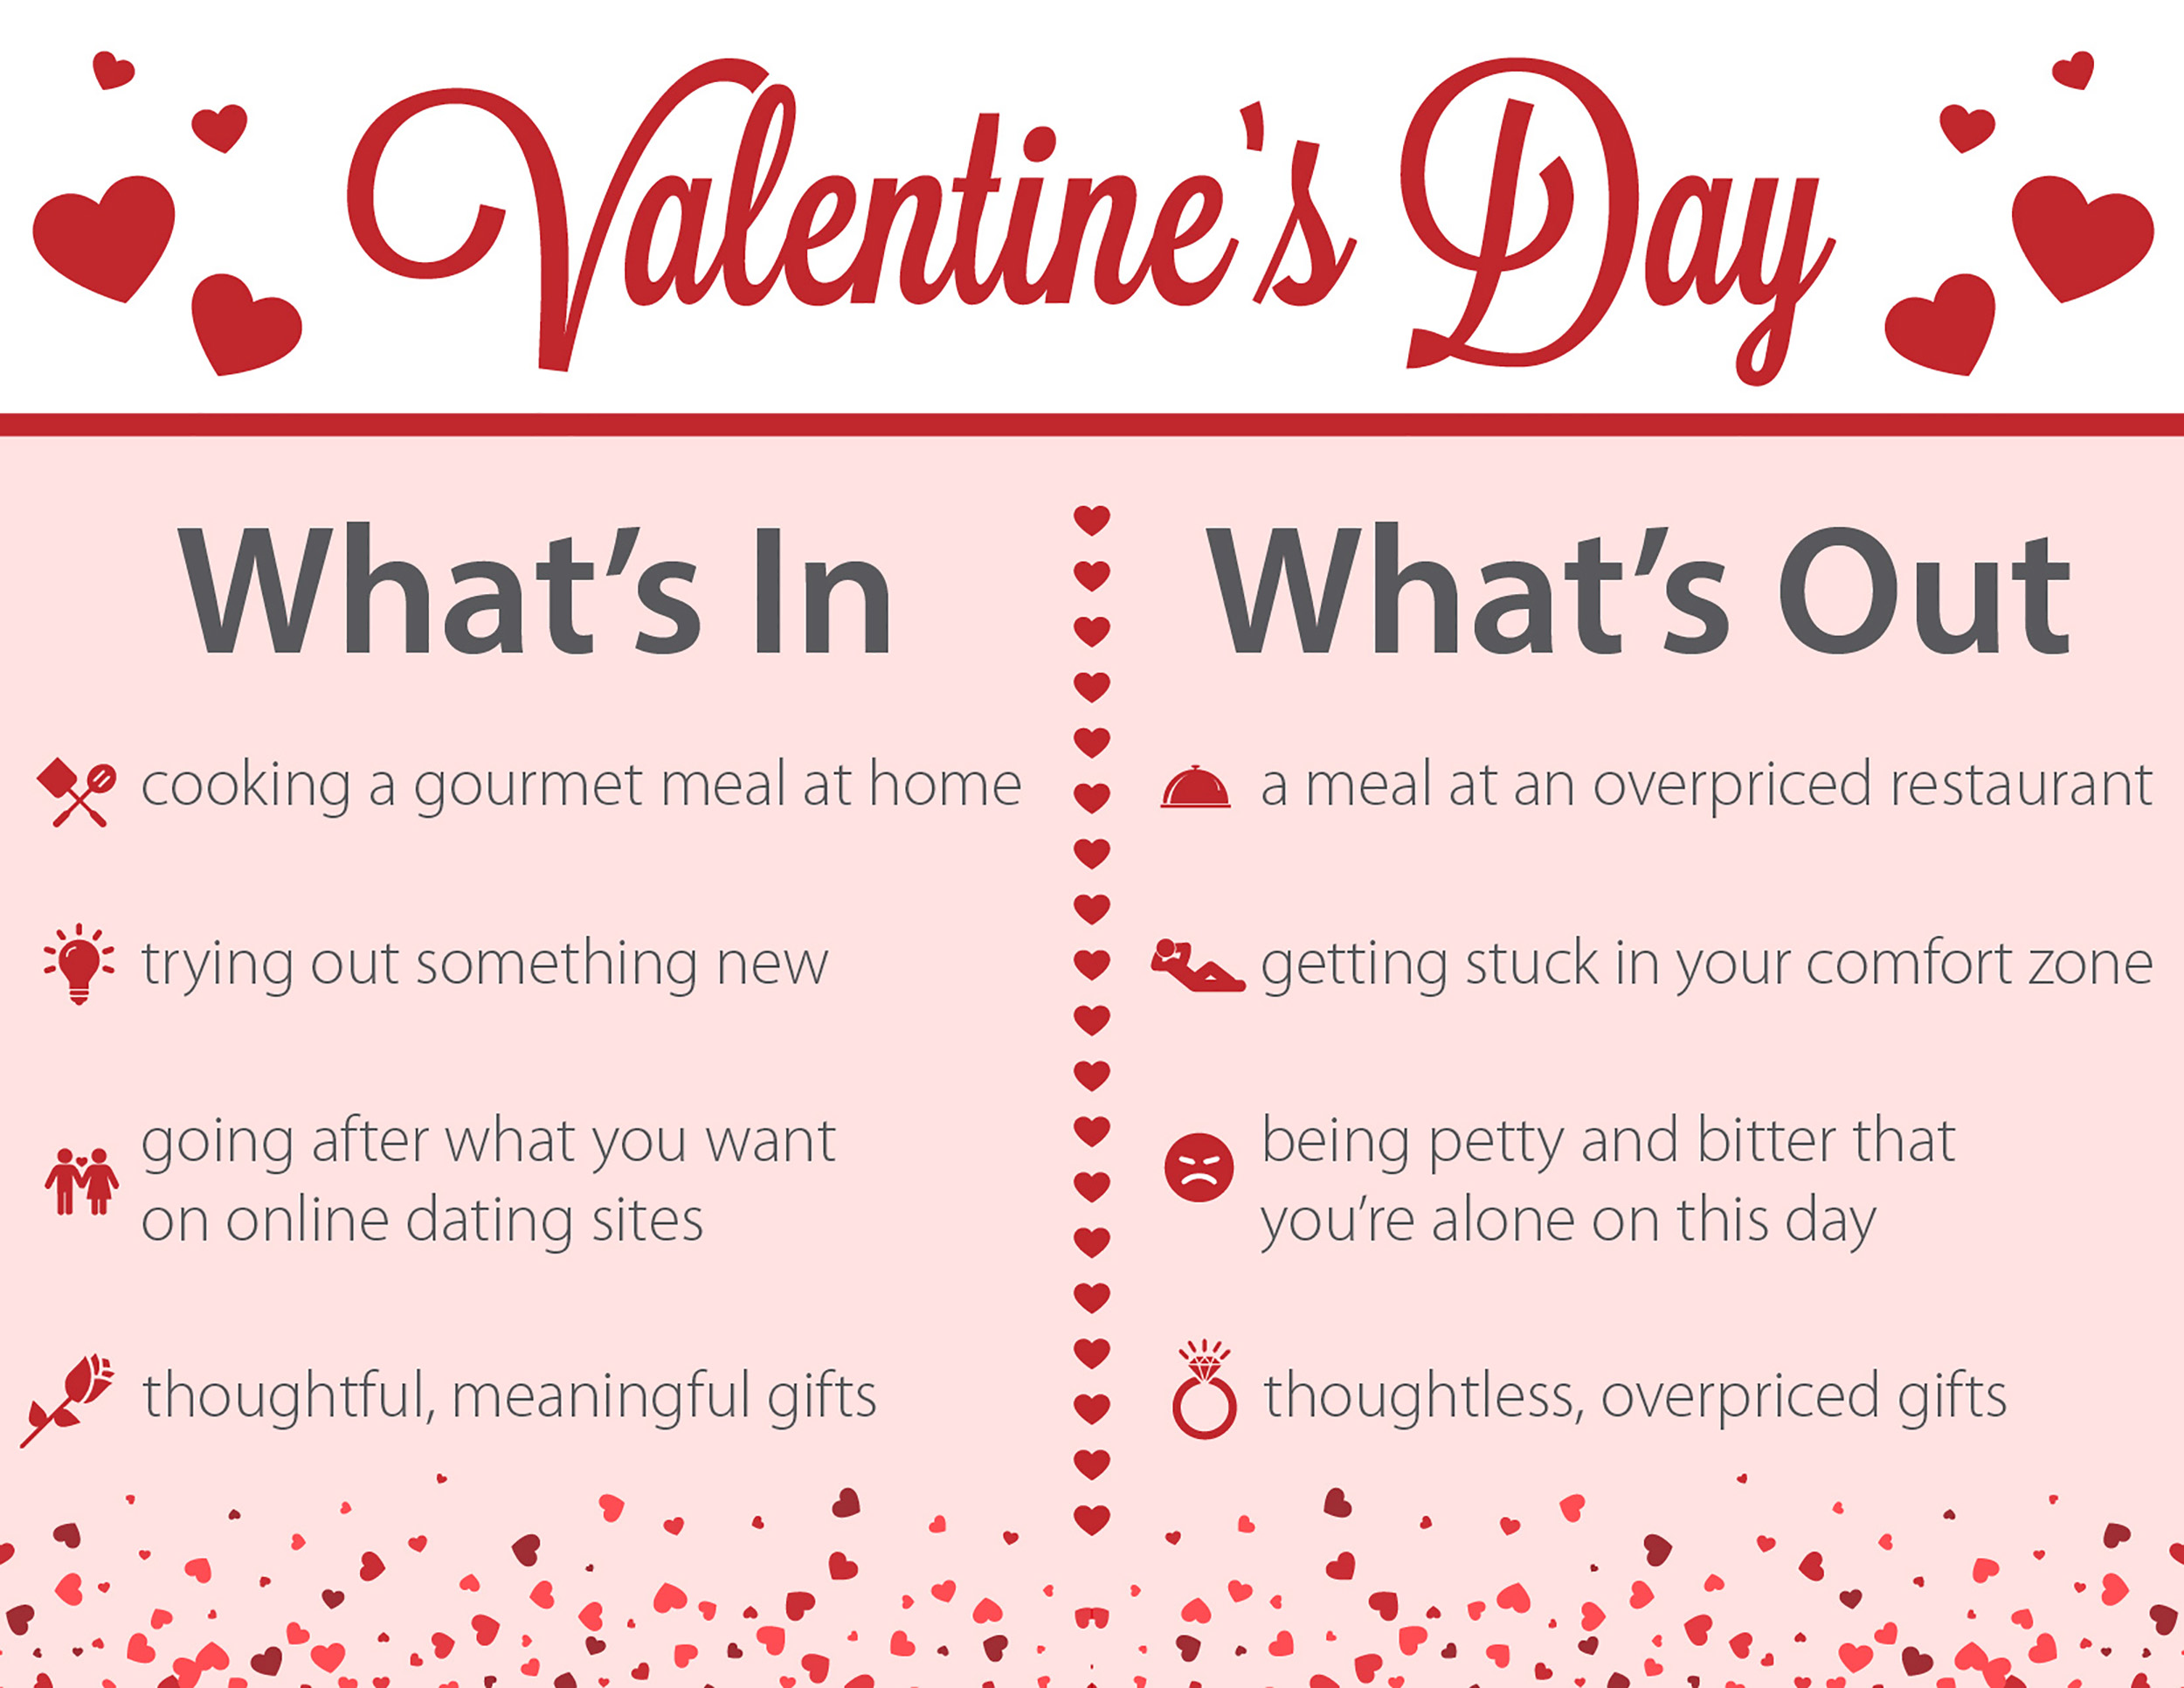 Valentine's Day What's In & What's Out